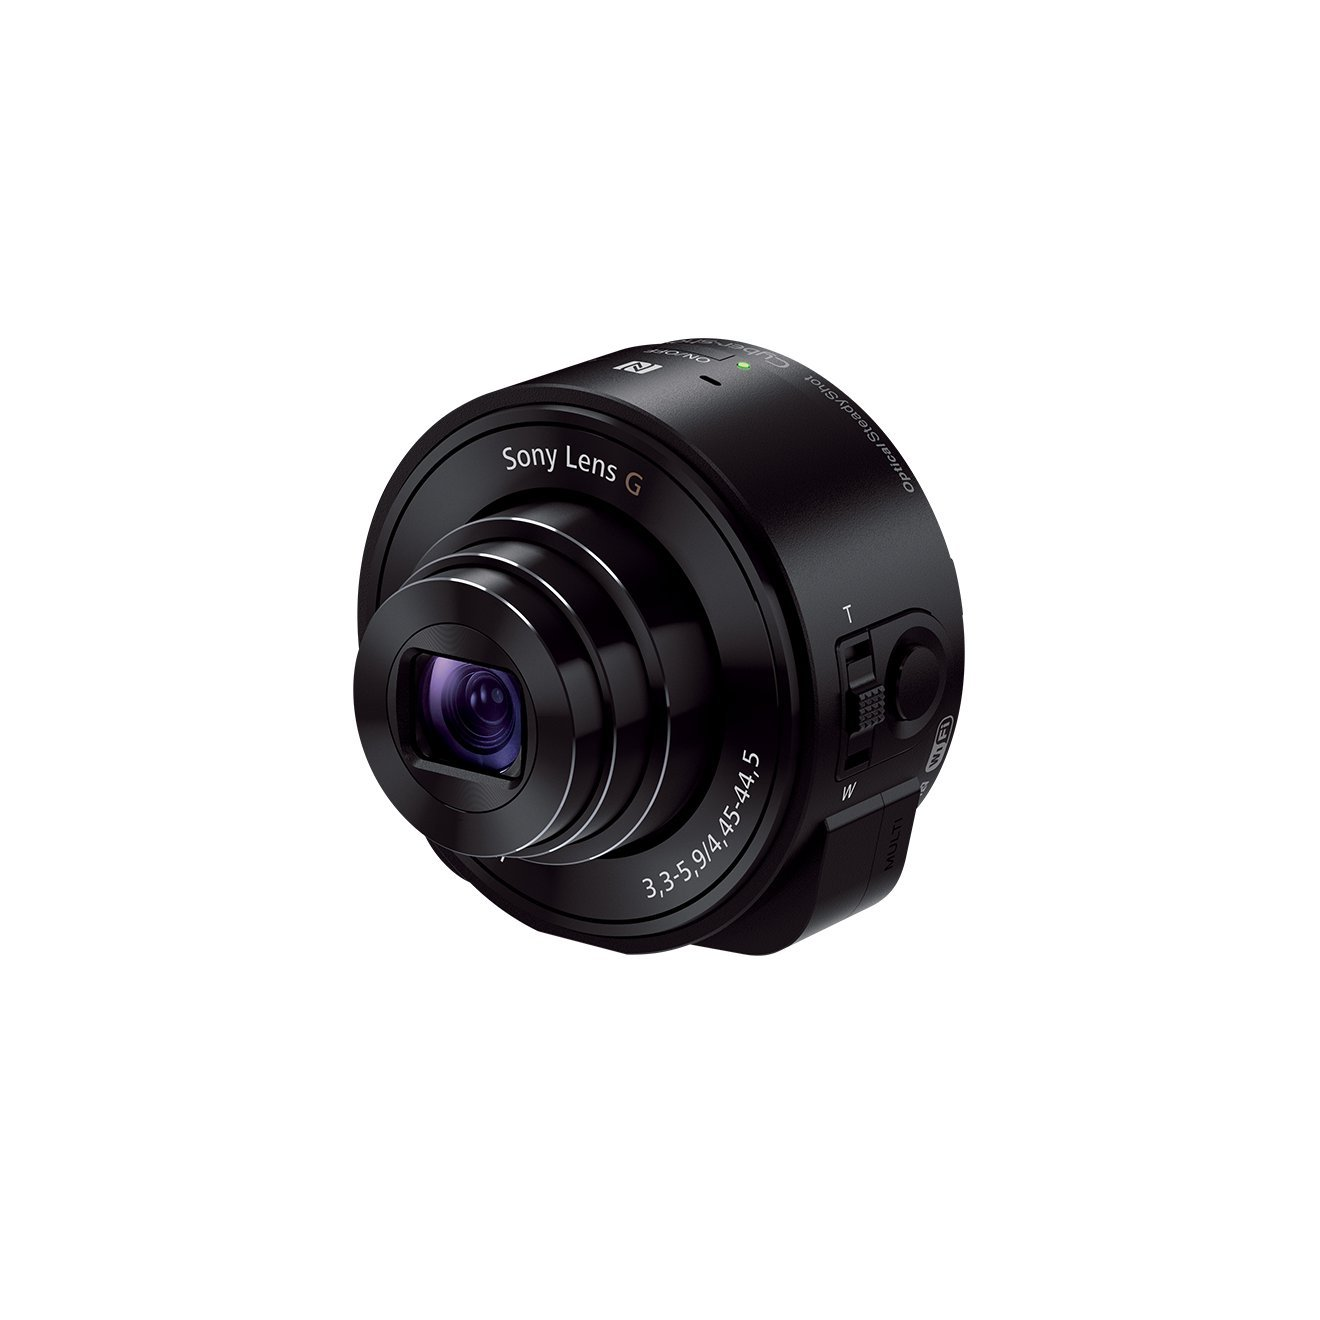 Sony DSC-QX10/B Smartphone Attachable 4.45-44.5mm Lens-Style Camera by Sony